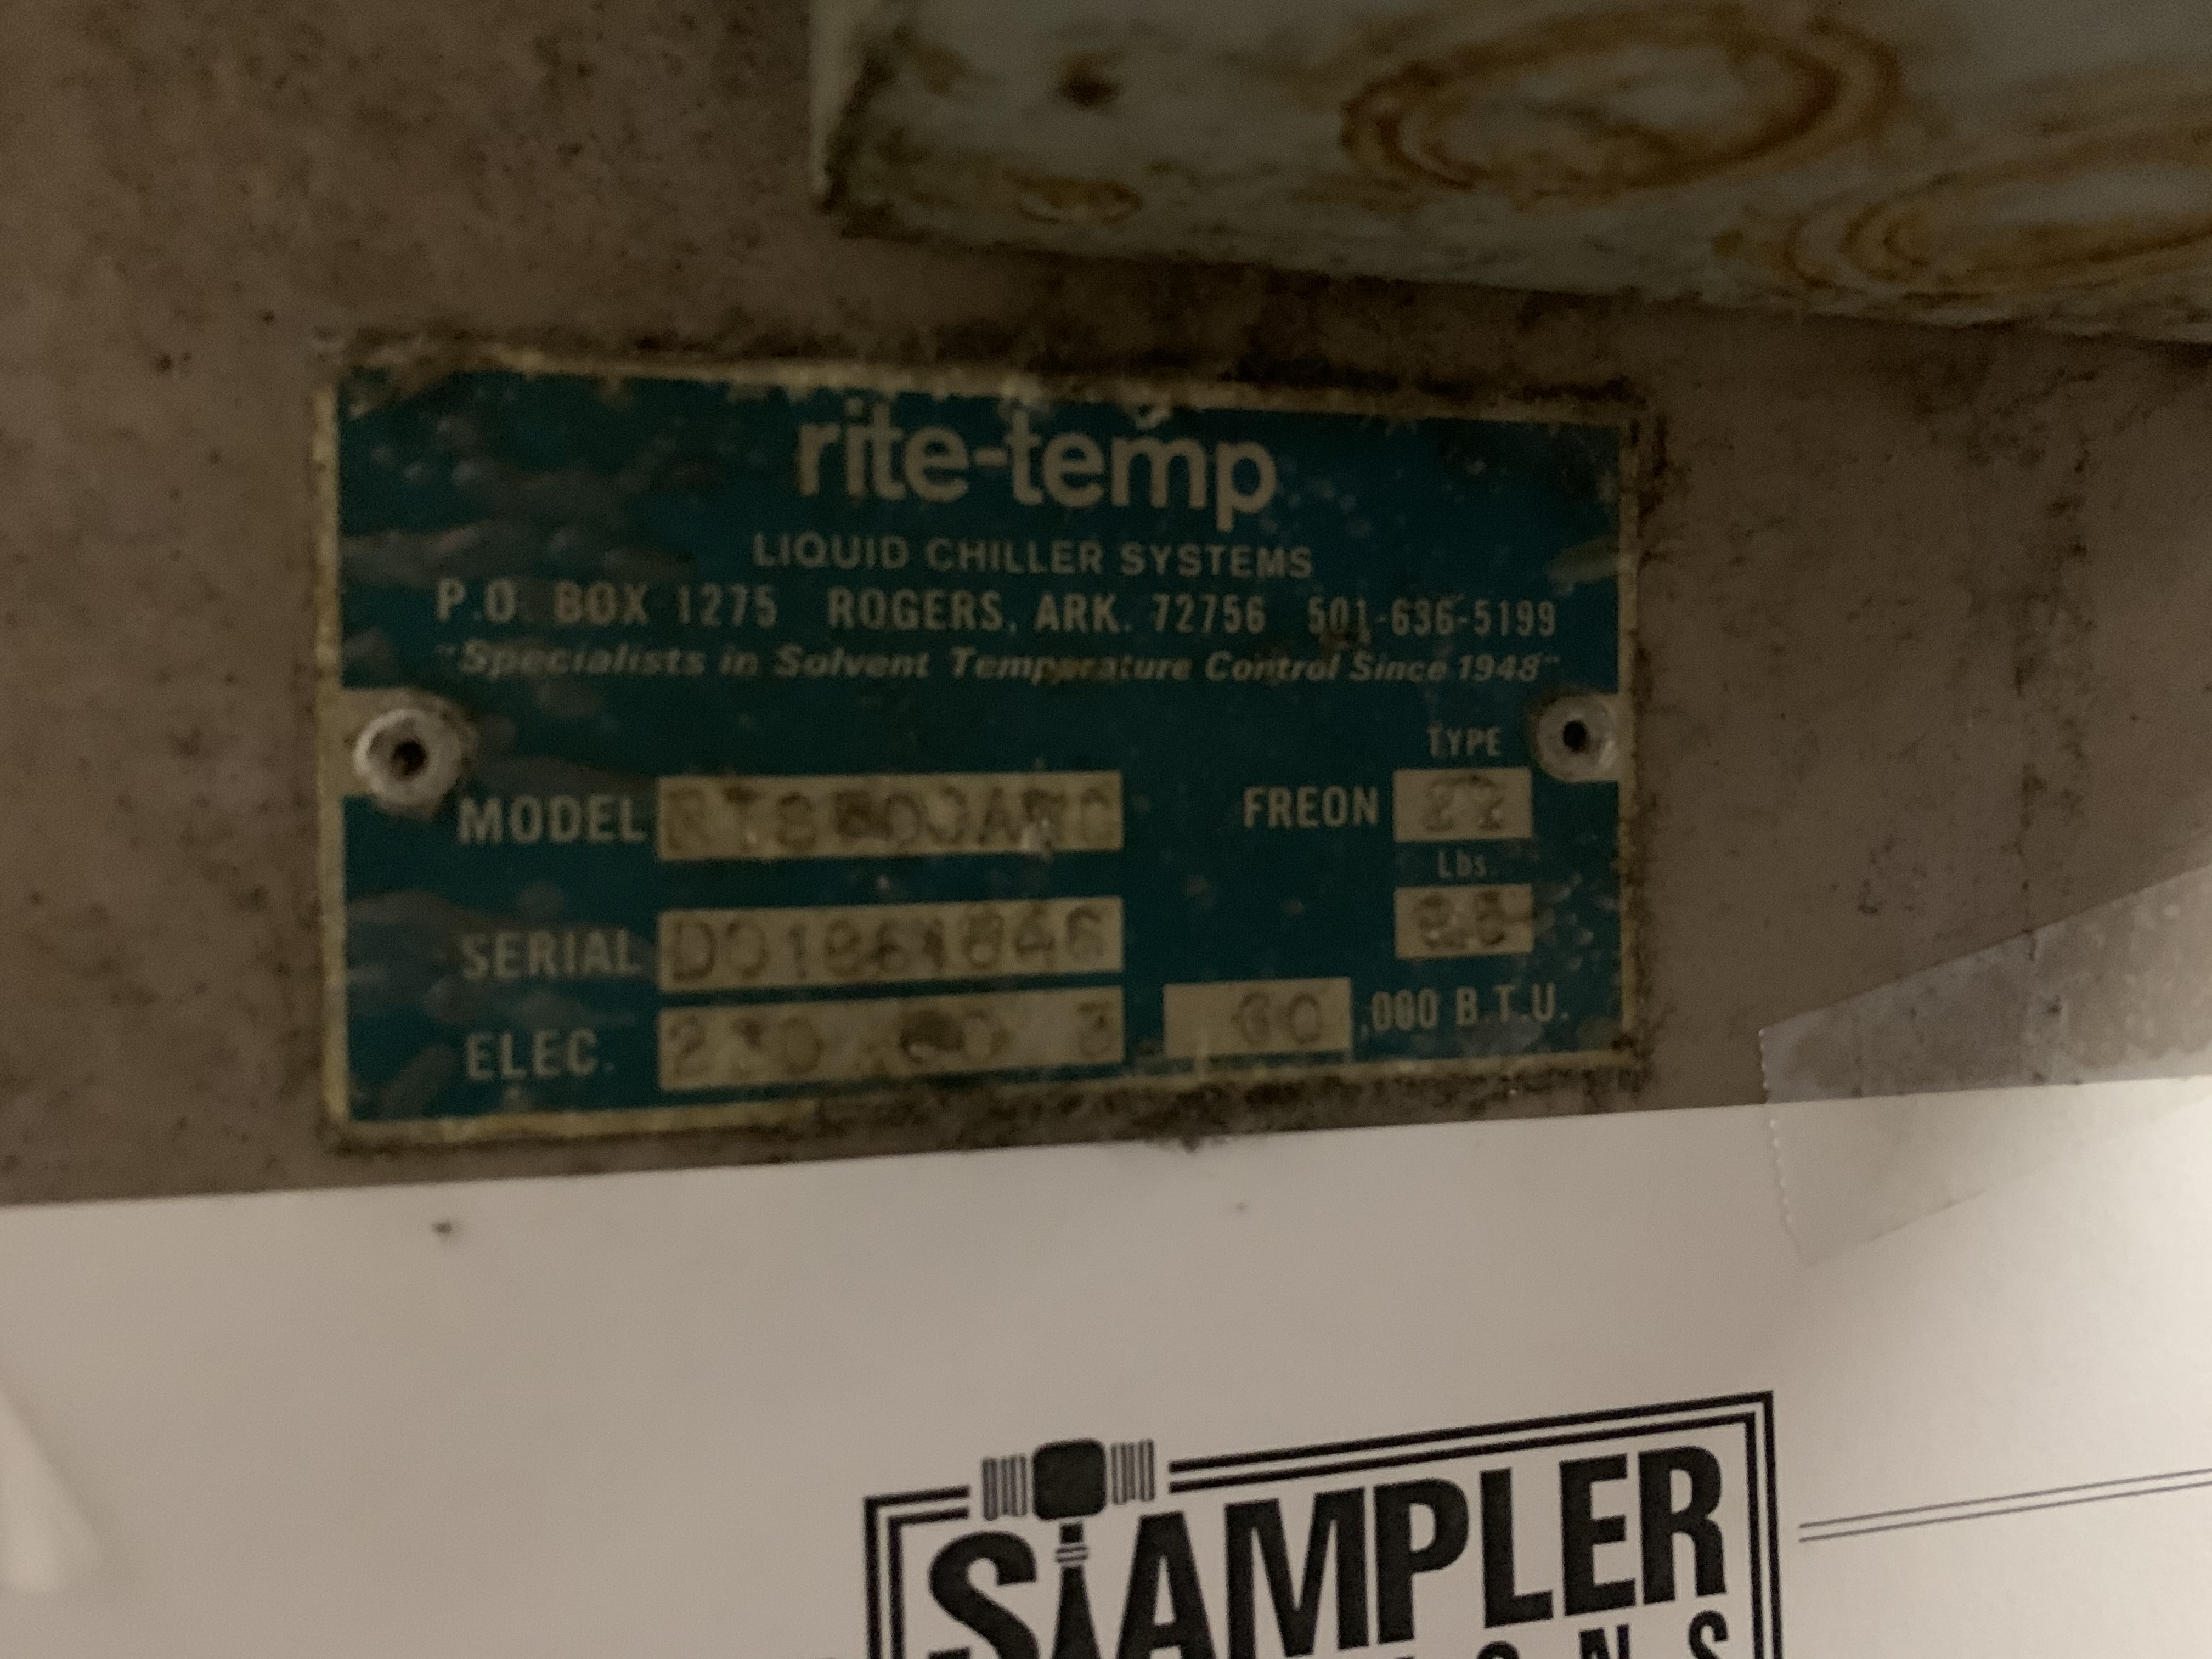 RITE-TEMP RTS-600ANC LIQUID CHILLER SYSTEM - 230 VOLT / 3 PHASE - SERIAL No. D001861846 - Image 3 of 7